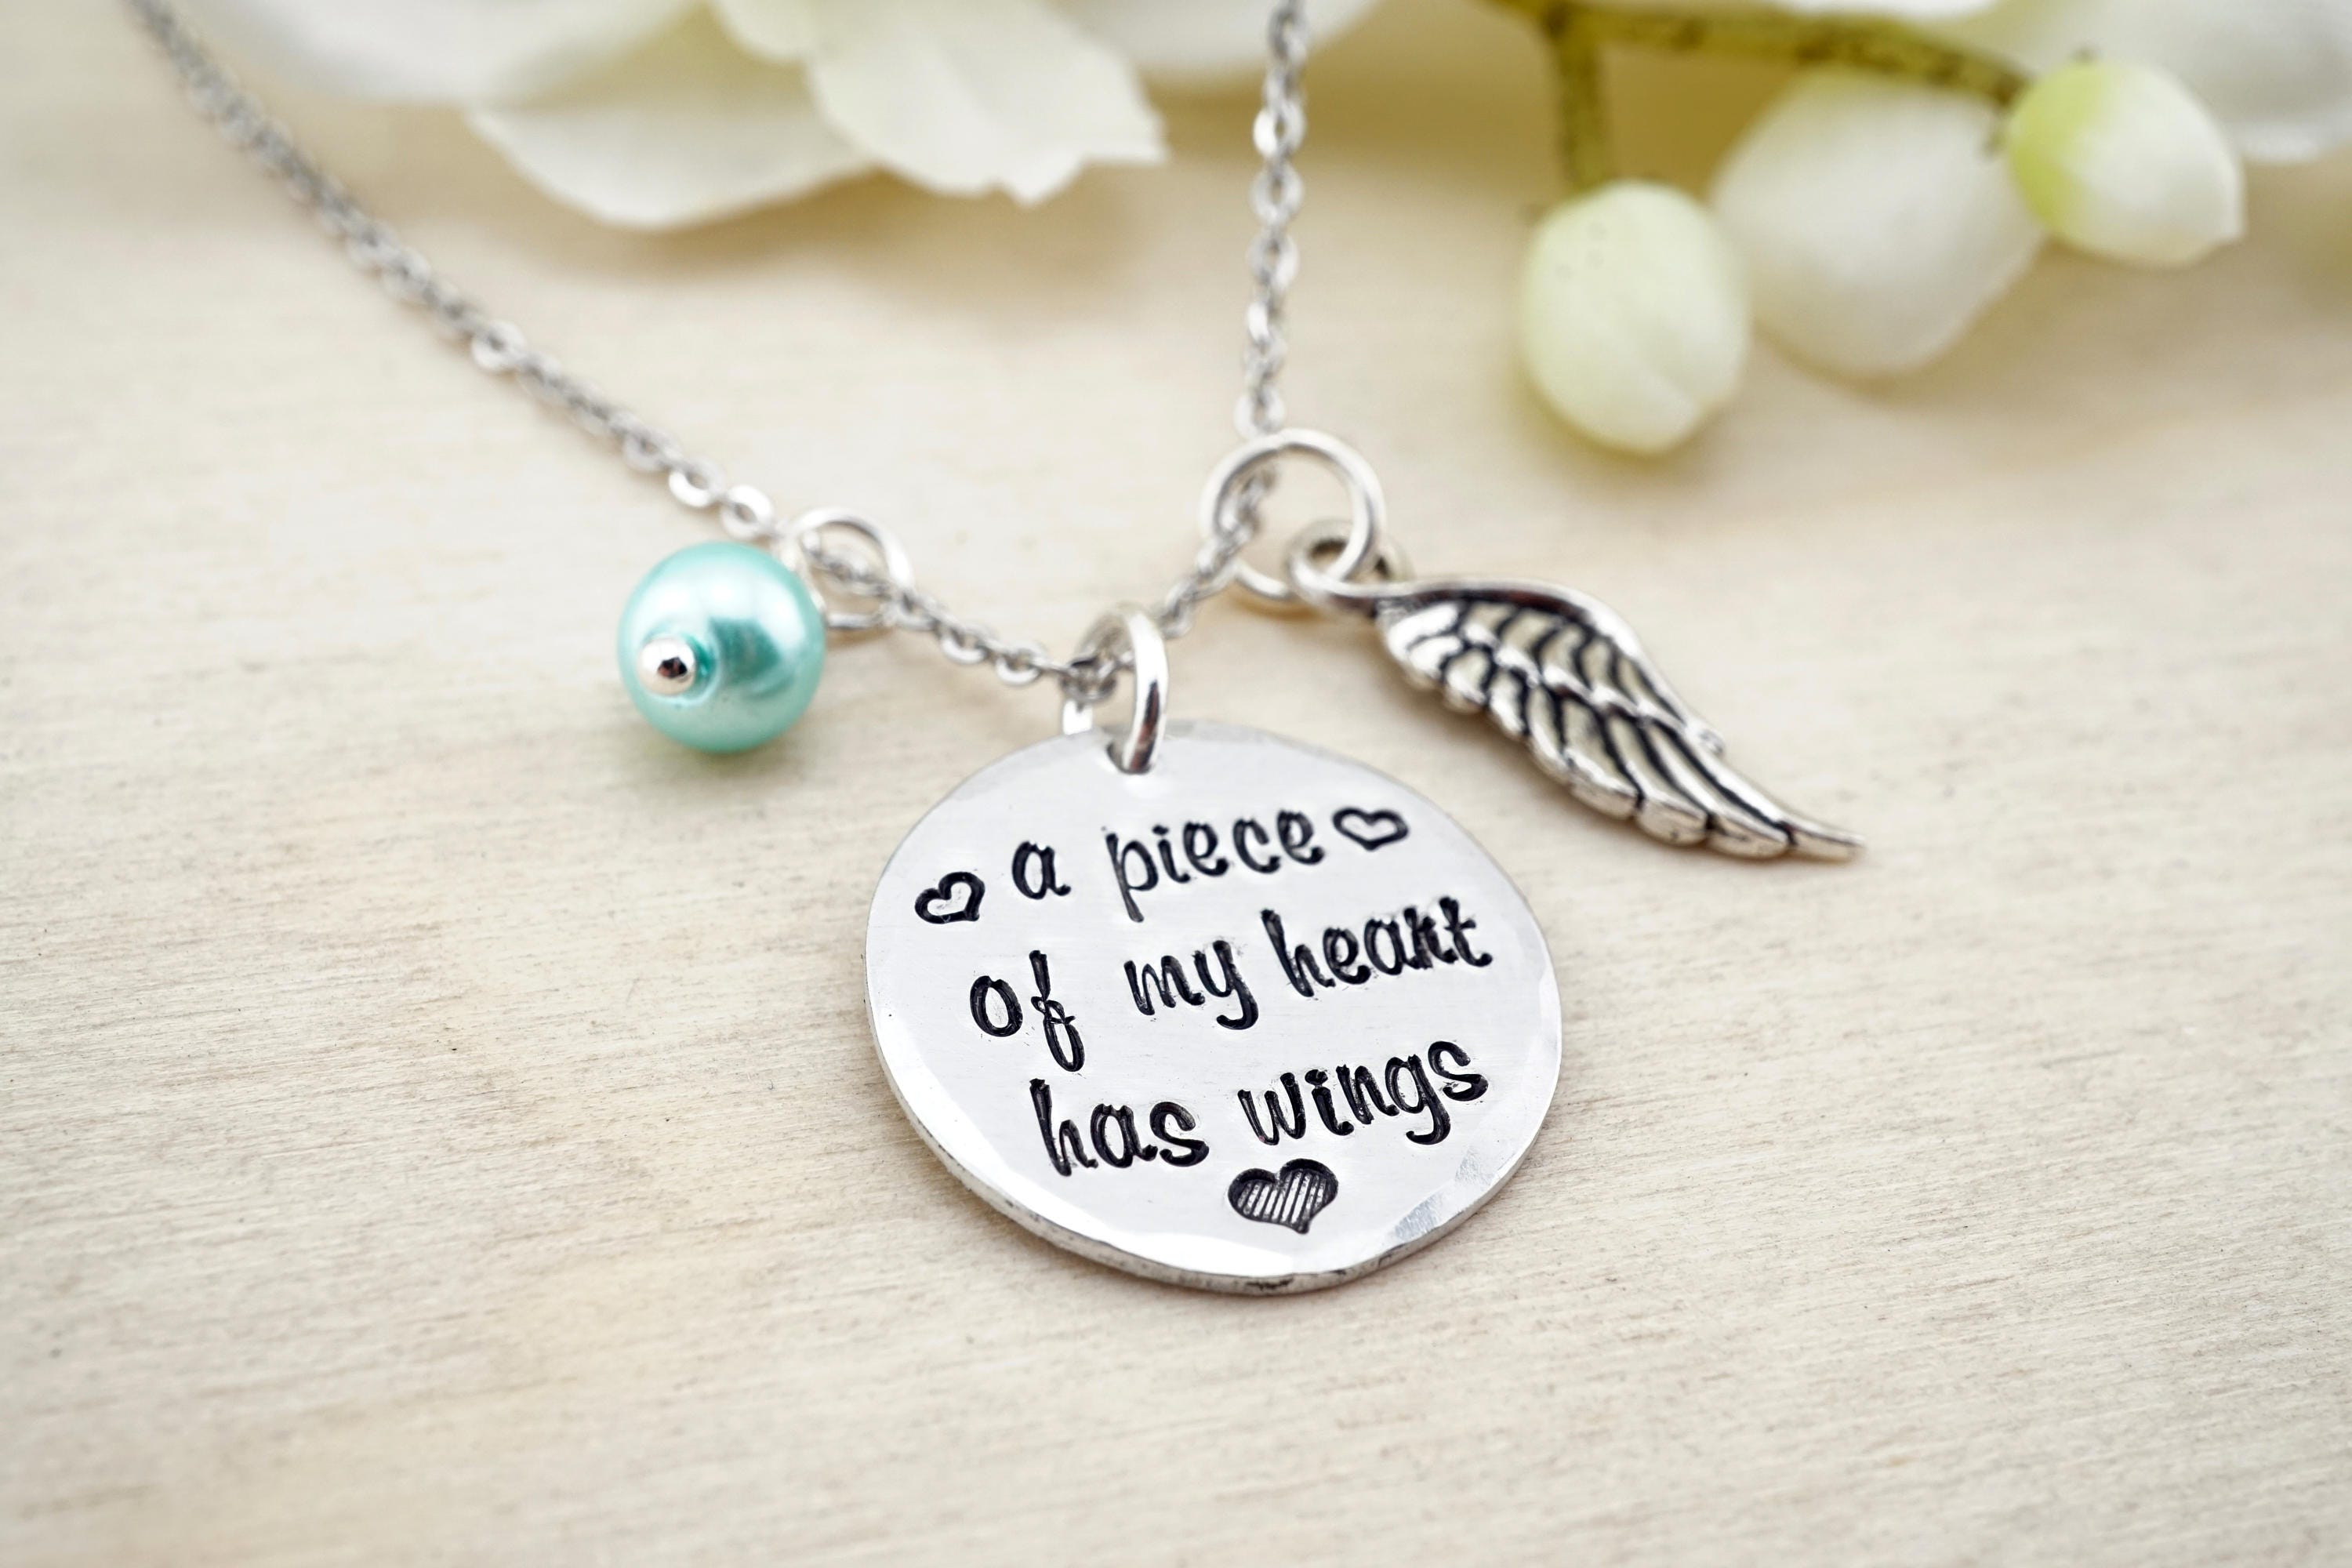 grief remembrance miscarriage have my god gift arms shop in jewelry i necklace memorial his pendant you heart has loss